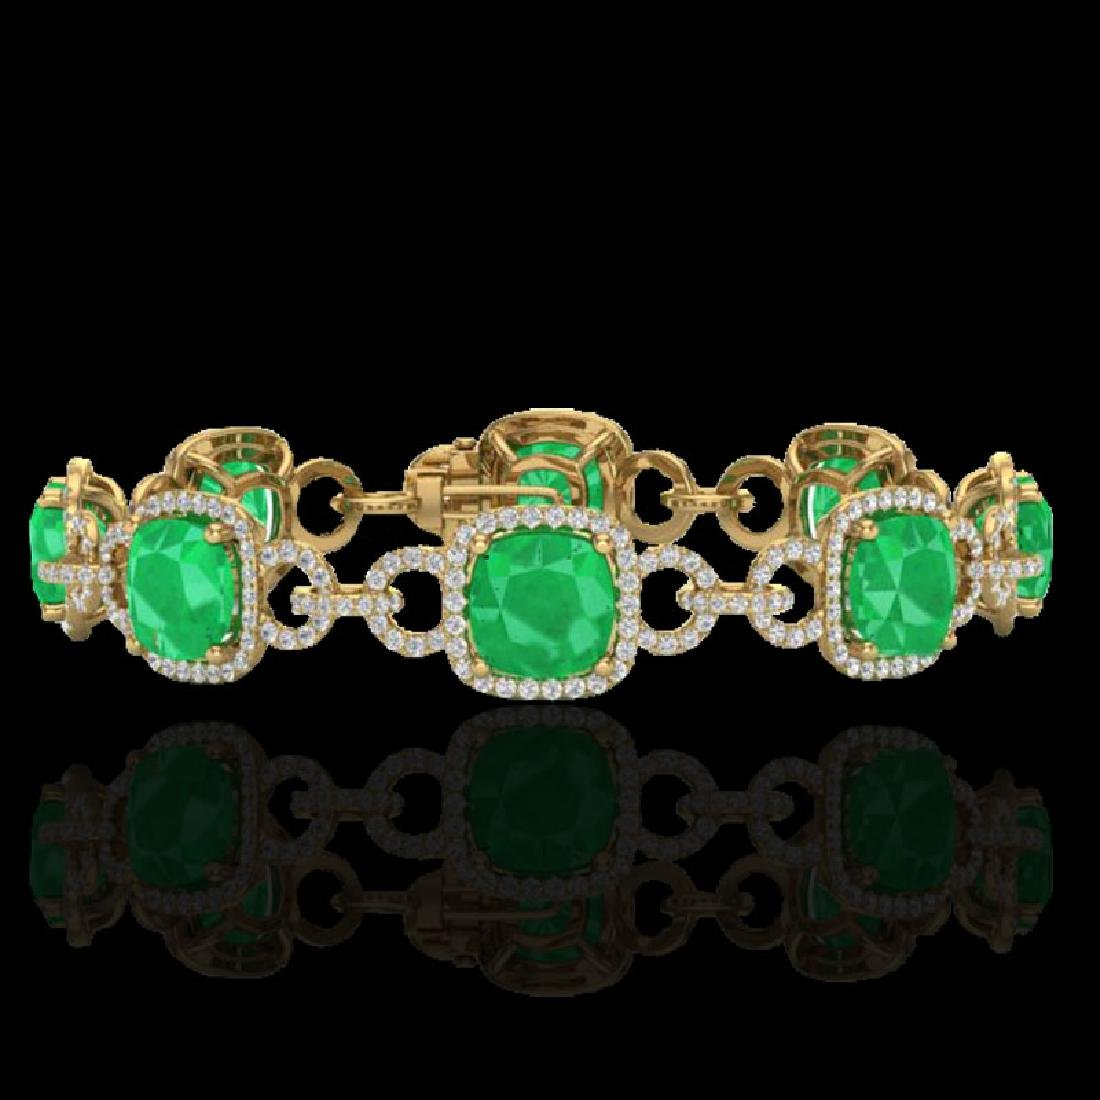 25 CTW Emerald & Micro VS/SI Diamond Bracelet 14K